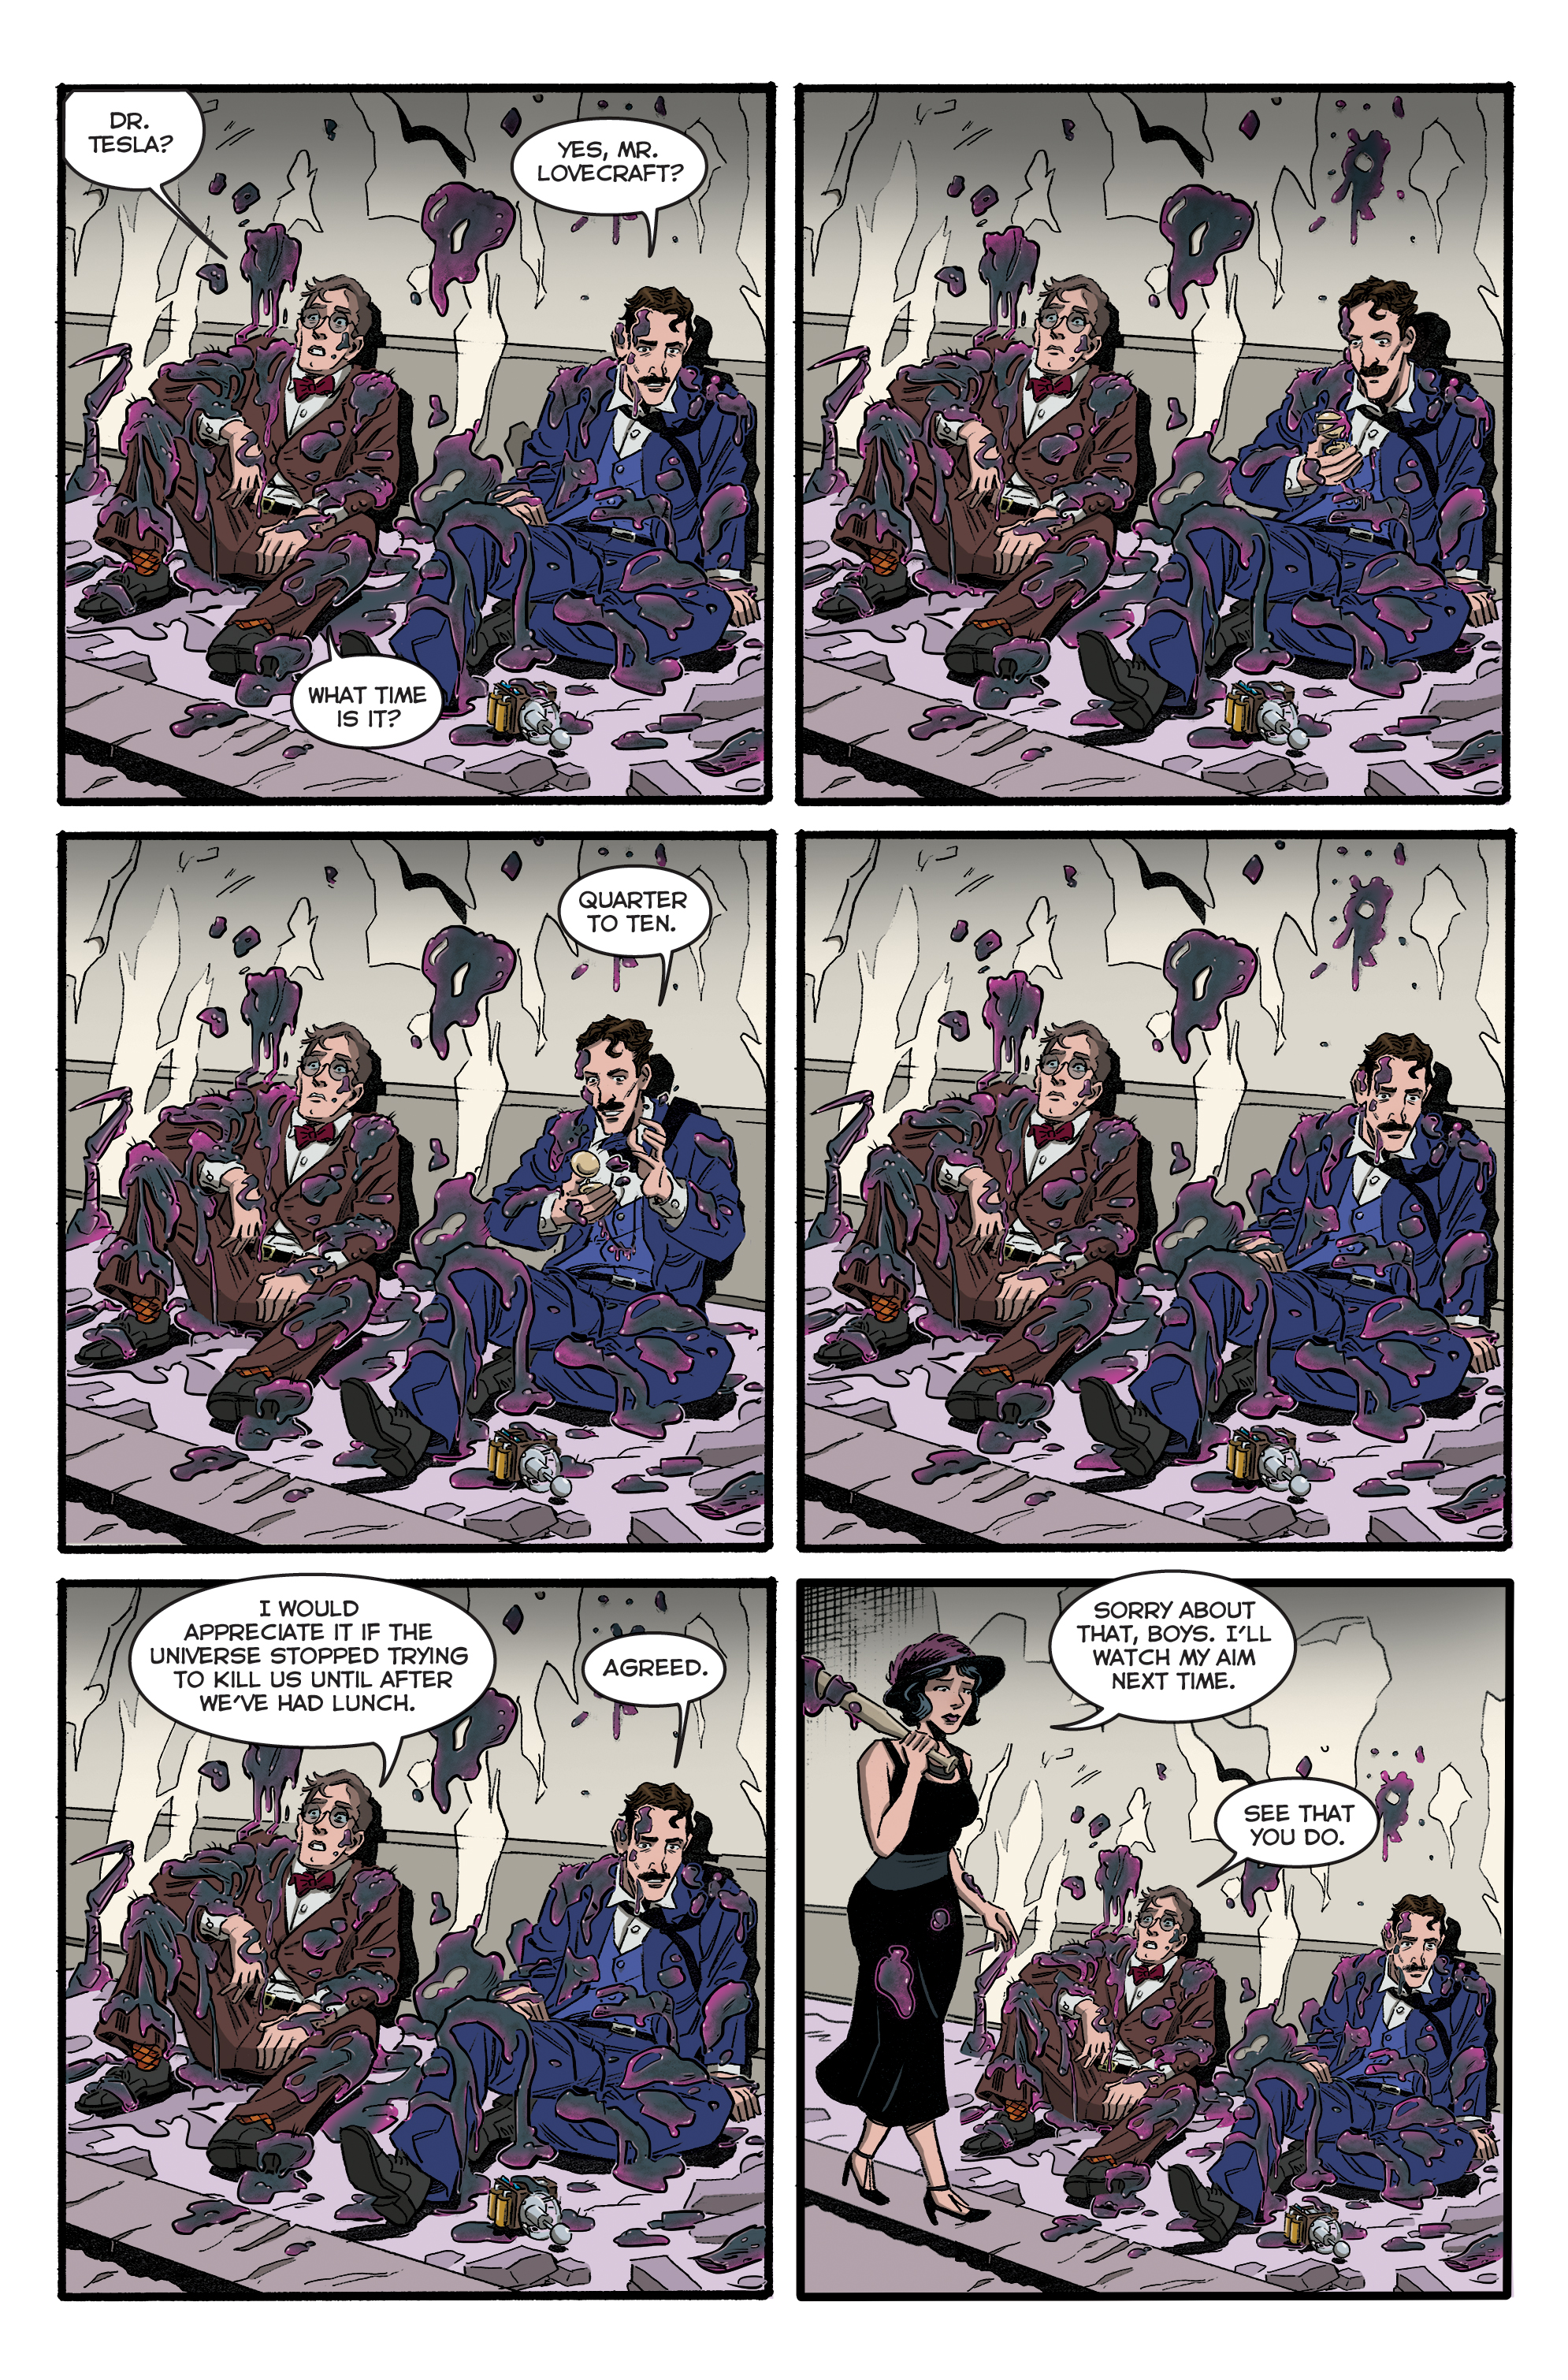 Herald Bundles of Joy #1 Page 5.jpg